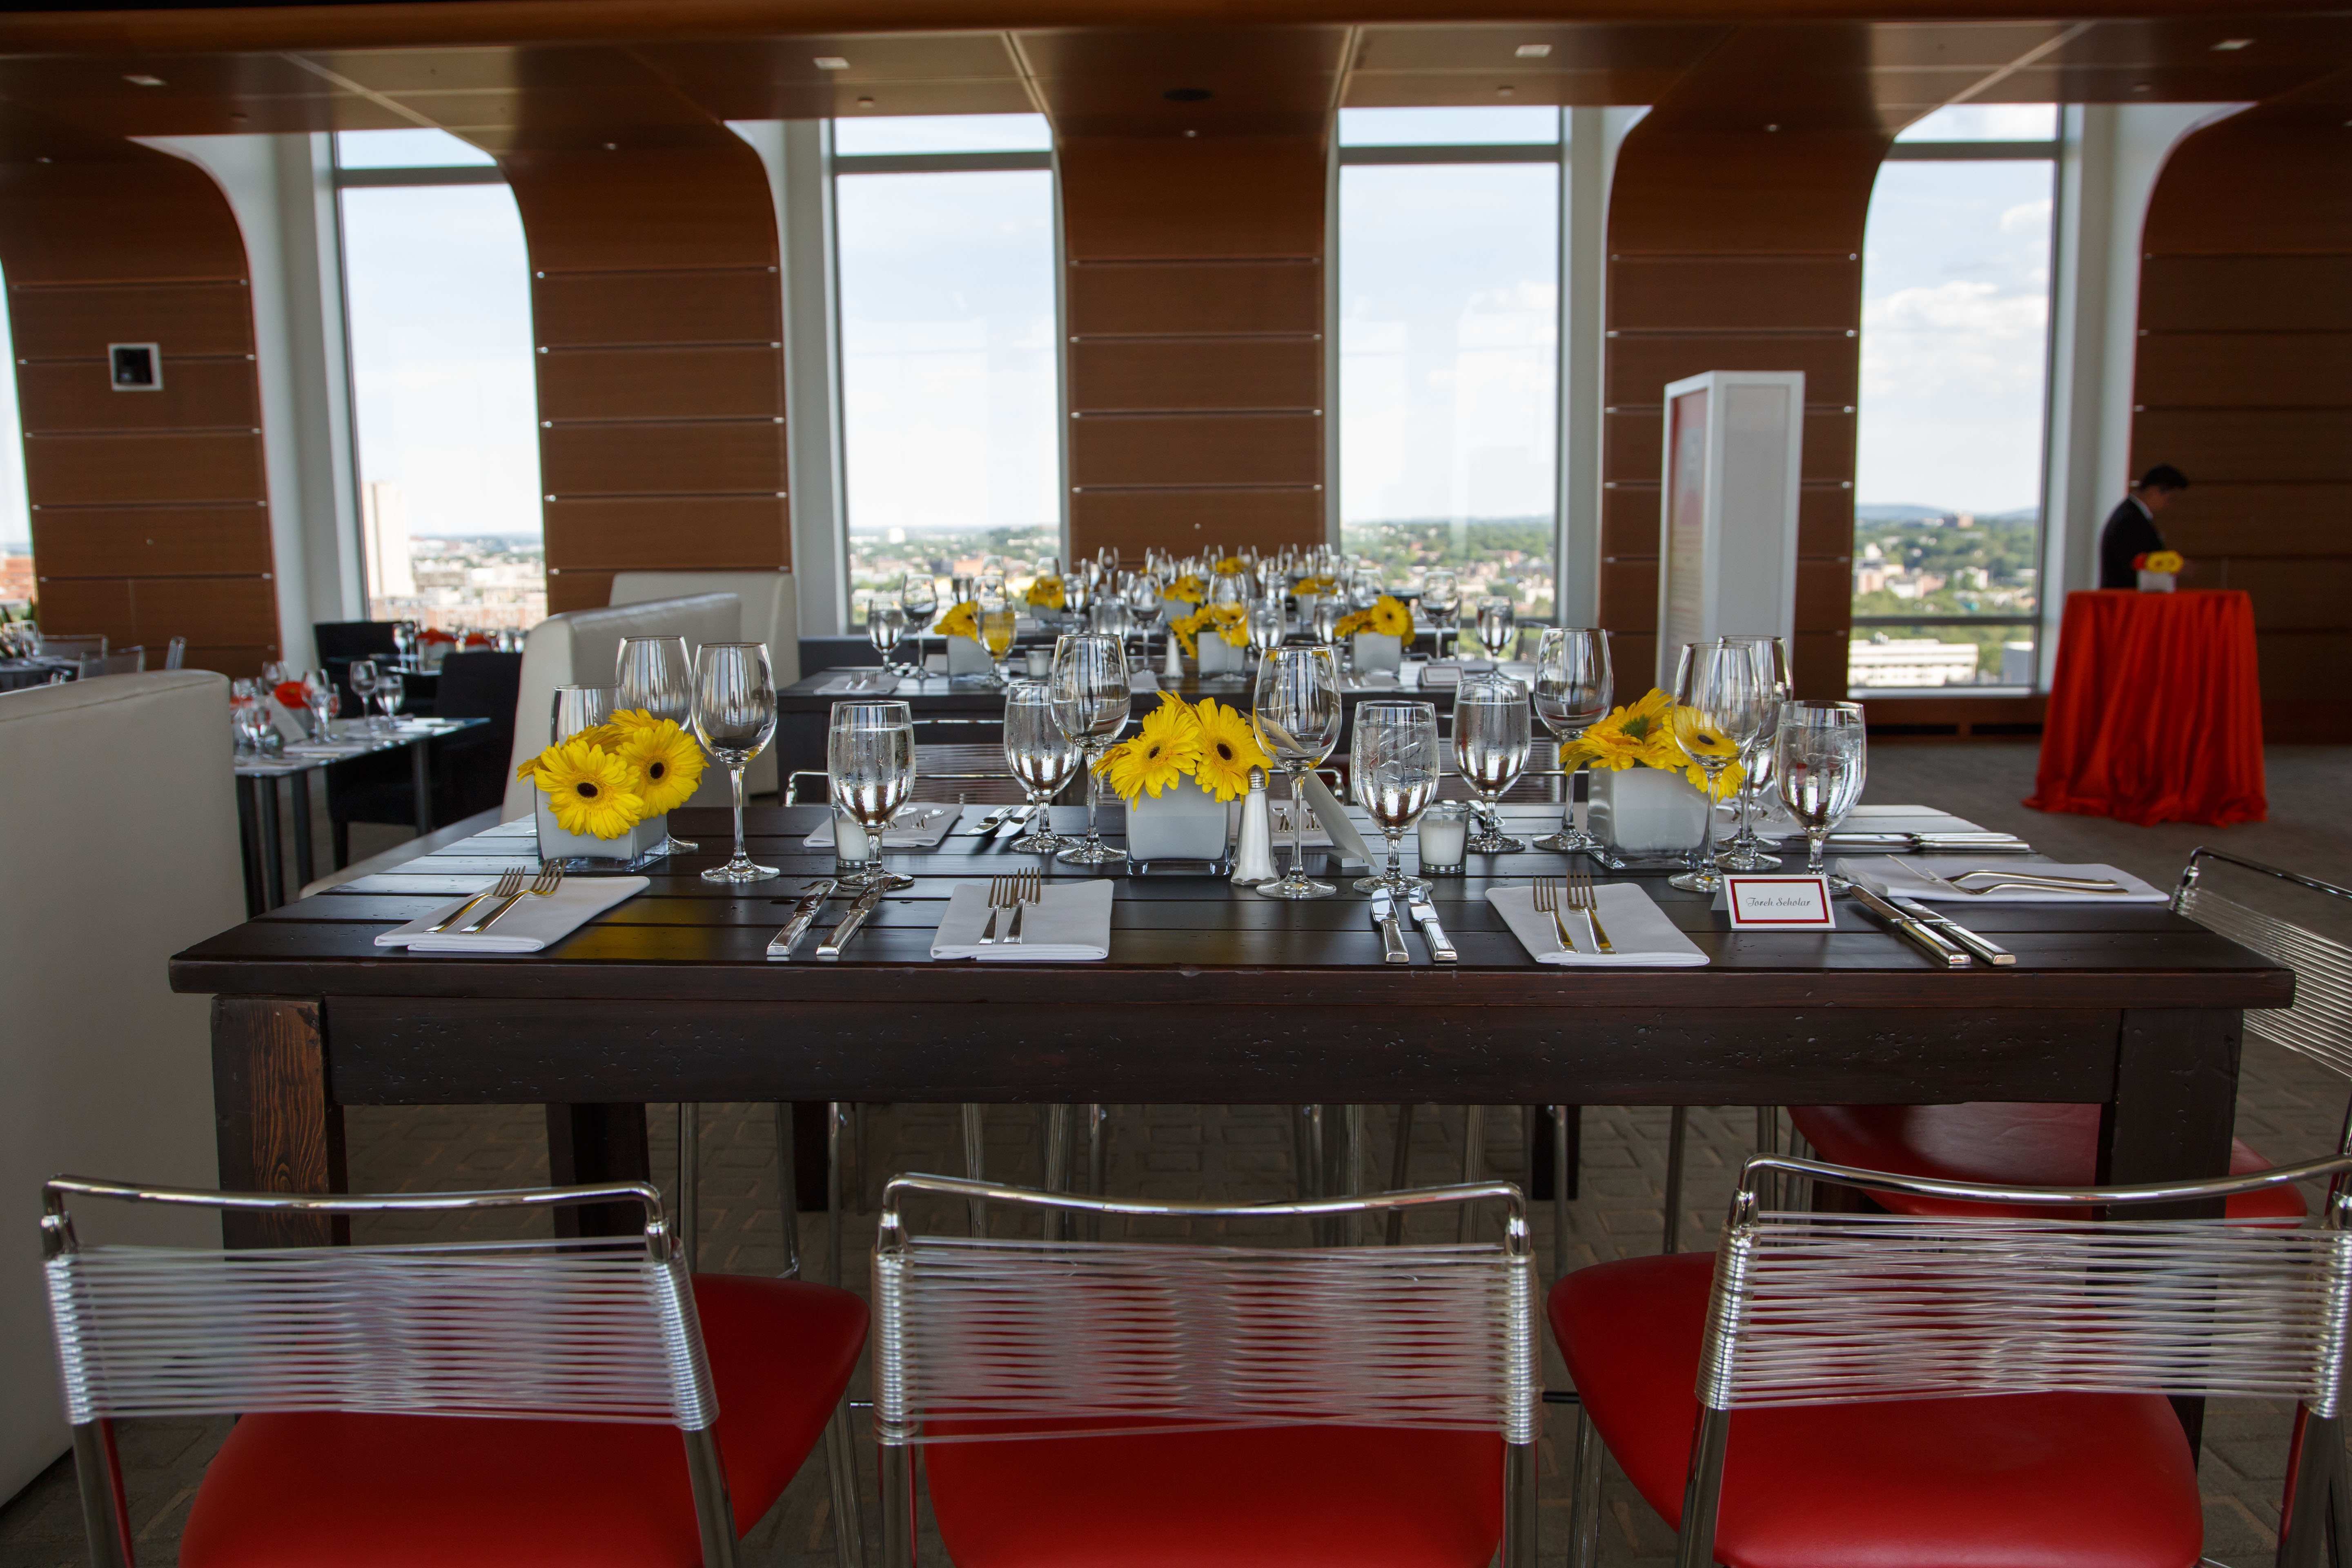 Yellow Flowers on Tables